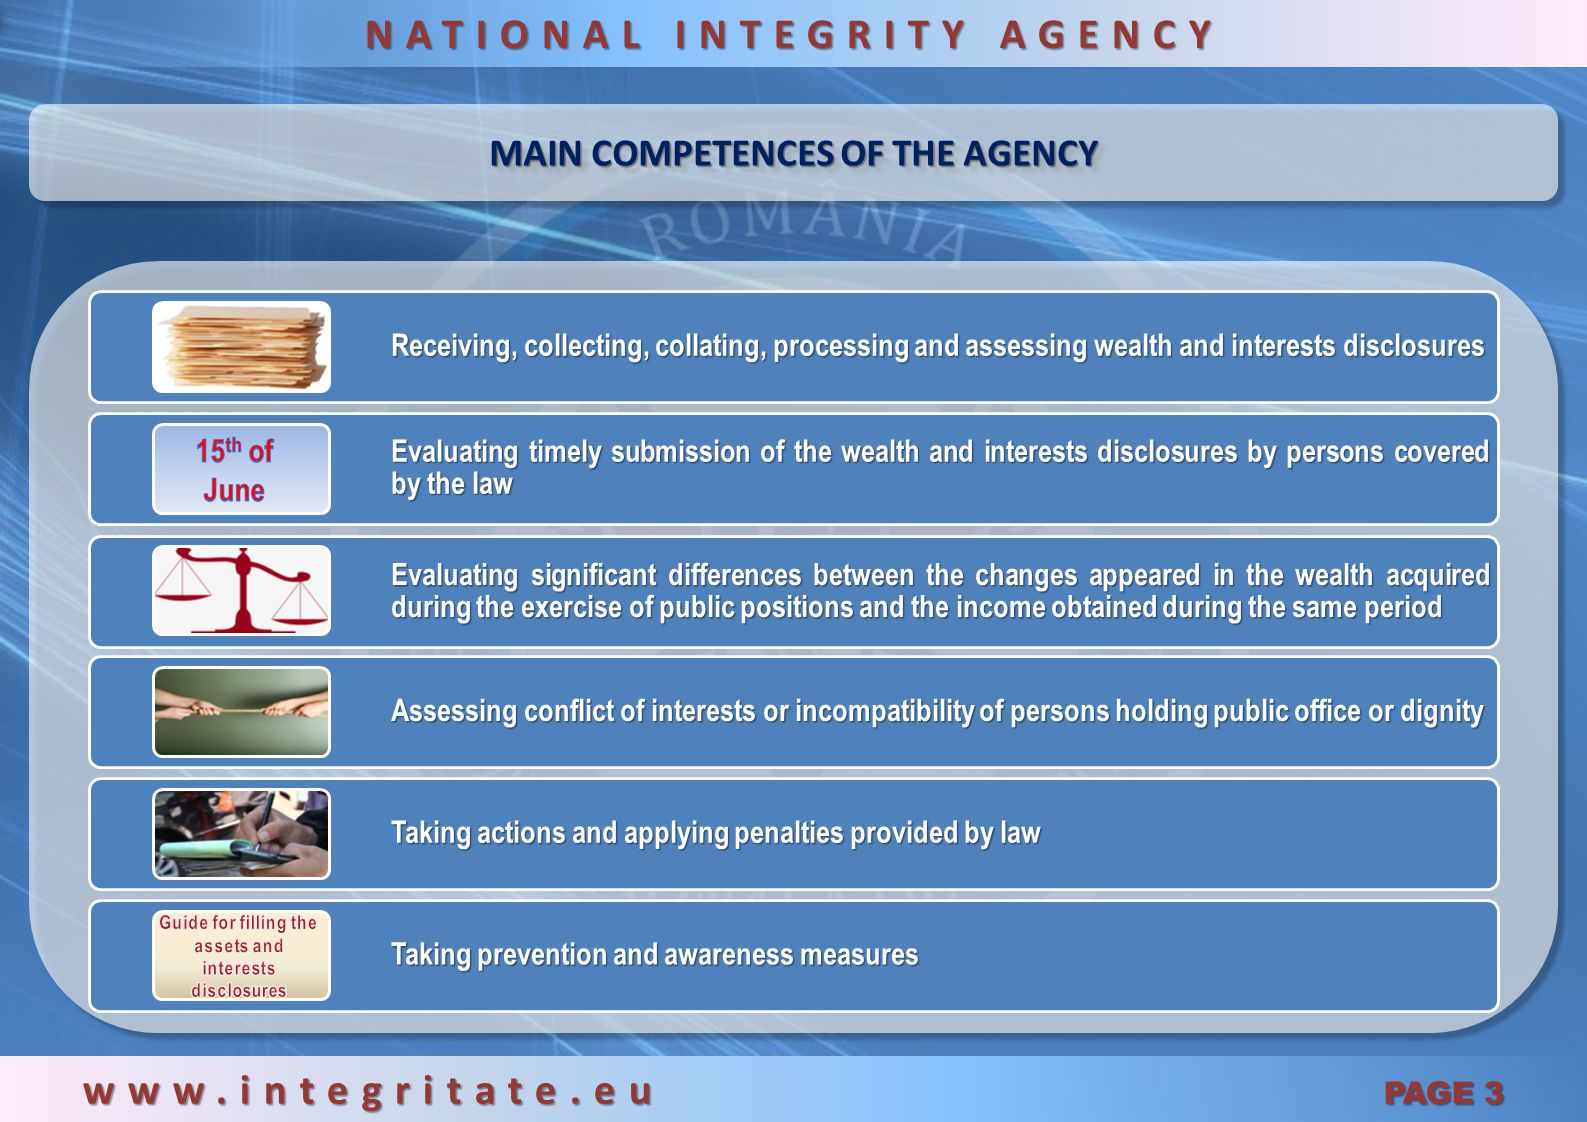 MAIN COMPETENCES OF THE AGENCY www.integritate.eu PAGE 3 NATIONAL INTEGRITY AGENCY Receiving, collecting, collating, processing and assessing wealth and interests disclosures Evaluating timely submission of the wealth and interests disclosures by persons covered by the law Evaluating significant differences between the changes appeared in the wealth acquired during the exercise of public positions and the income obtained during the same period Assessing conflict of interests or incompatibility of persons holding public office or dignity Taking actions and applying penalties provided by law Taking prevention and awareness measures